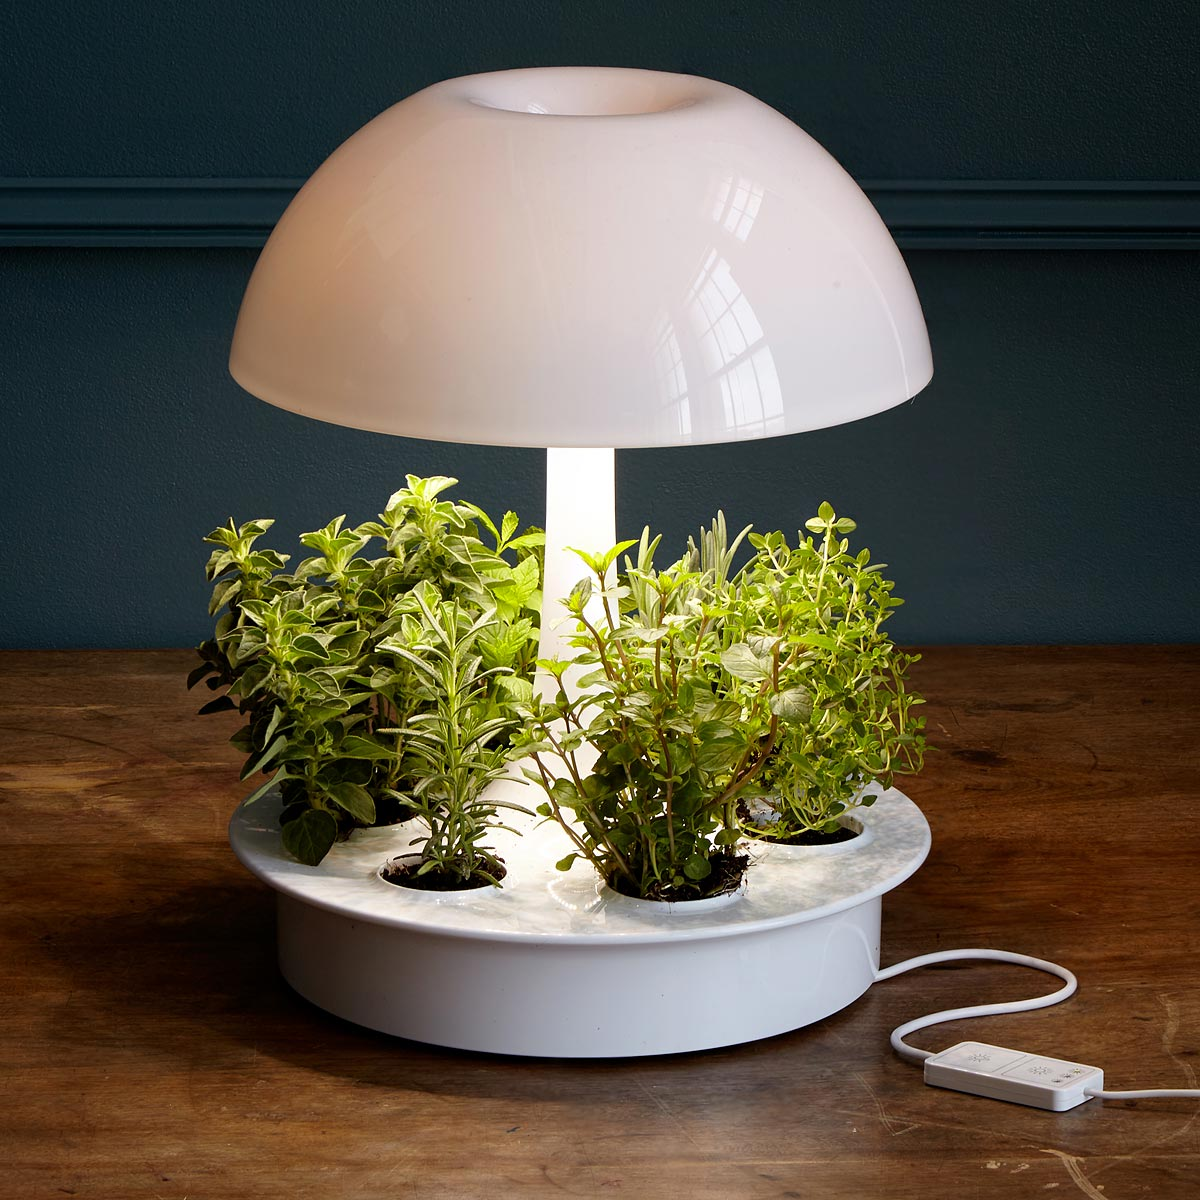 Lamp Plant Ambienta Grow Lamp Plant Light Hydroponics Uncommongoods